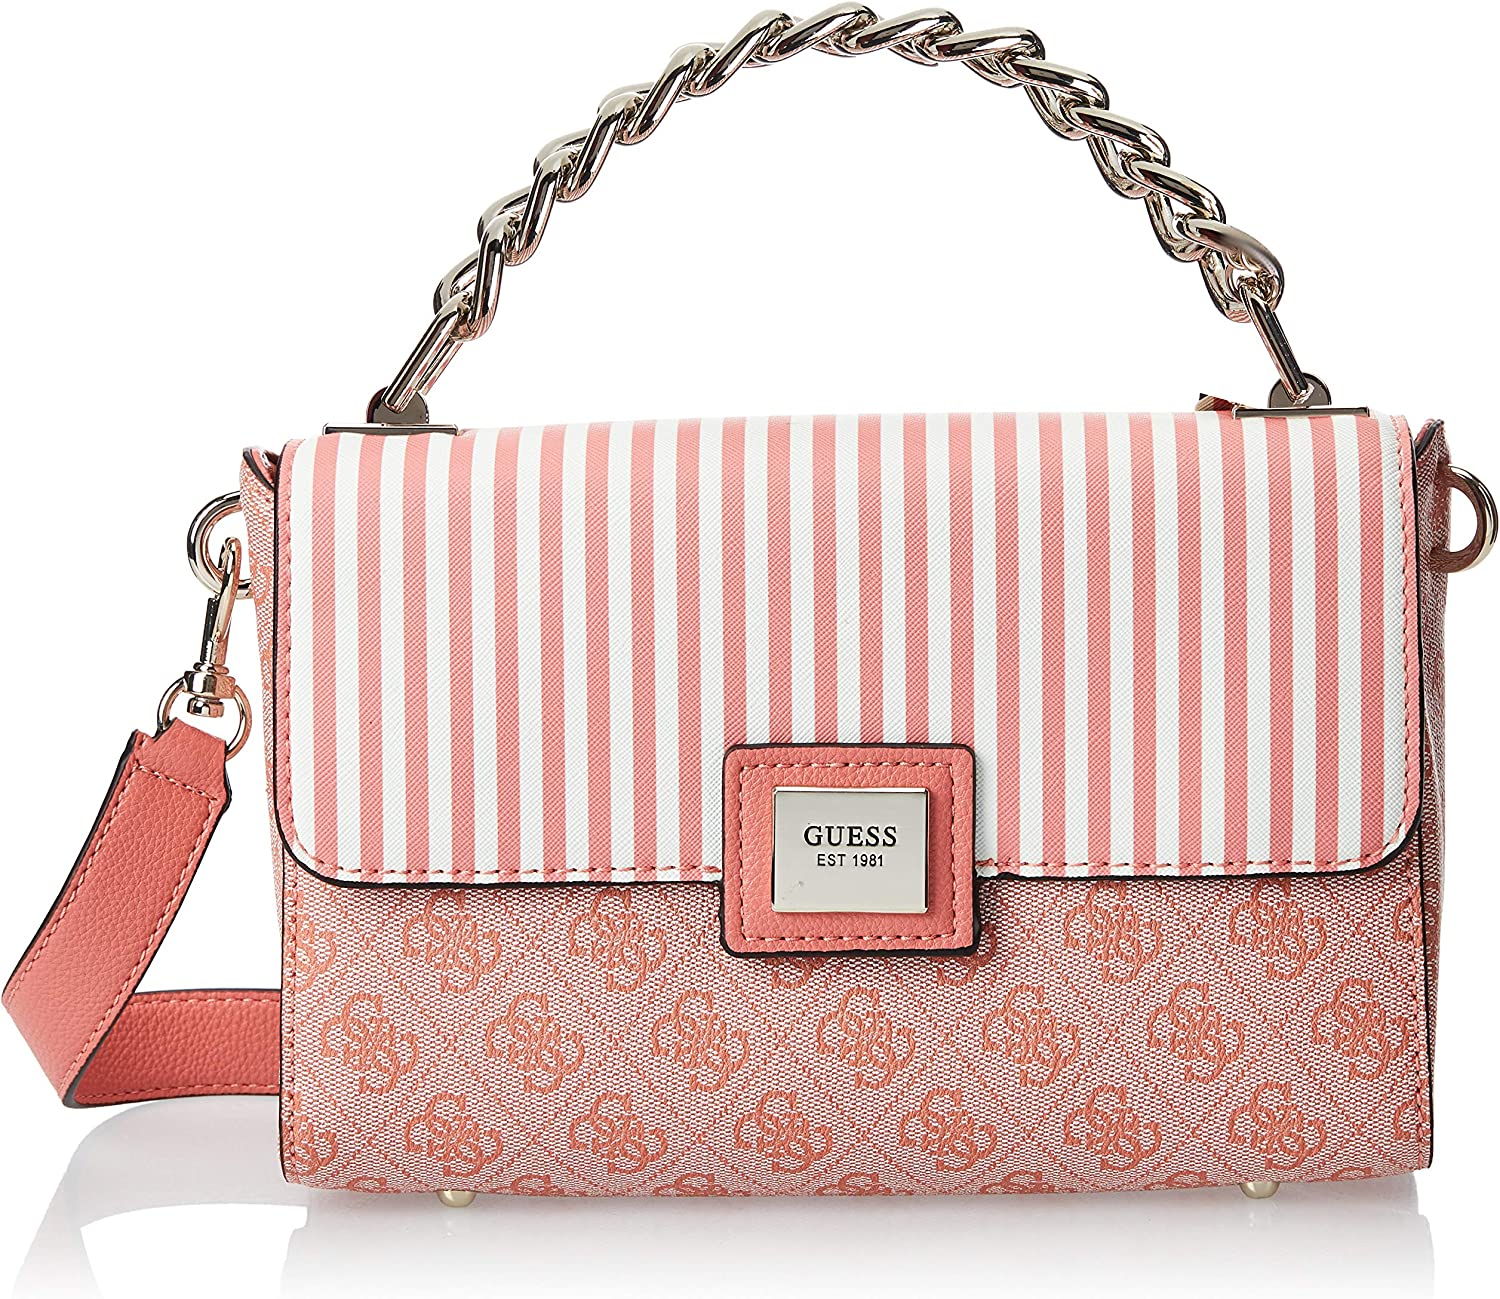 GUESS Crossbody, Coral